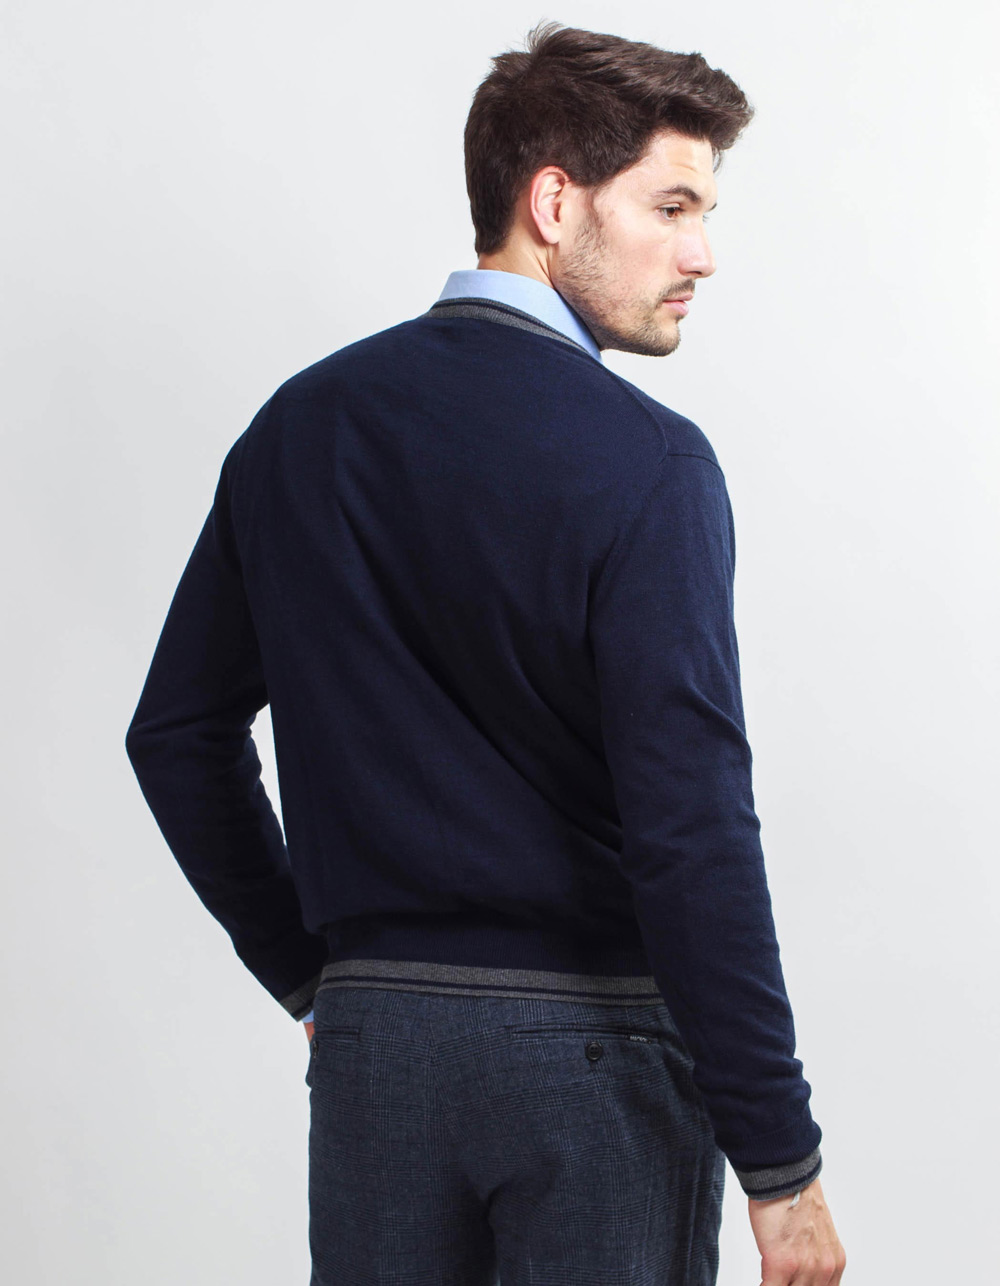 Navy v-neck sweater - Backside